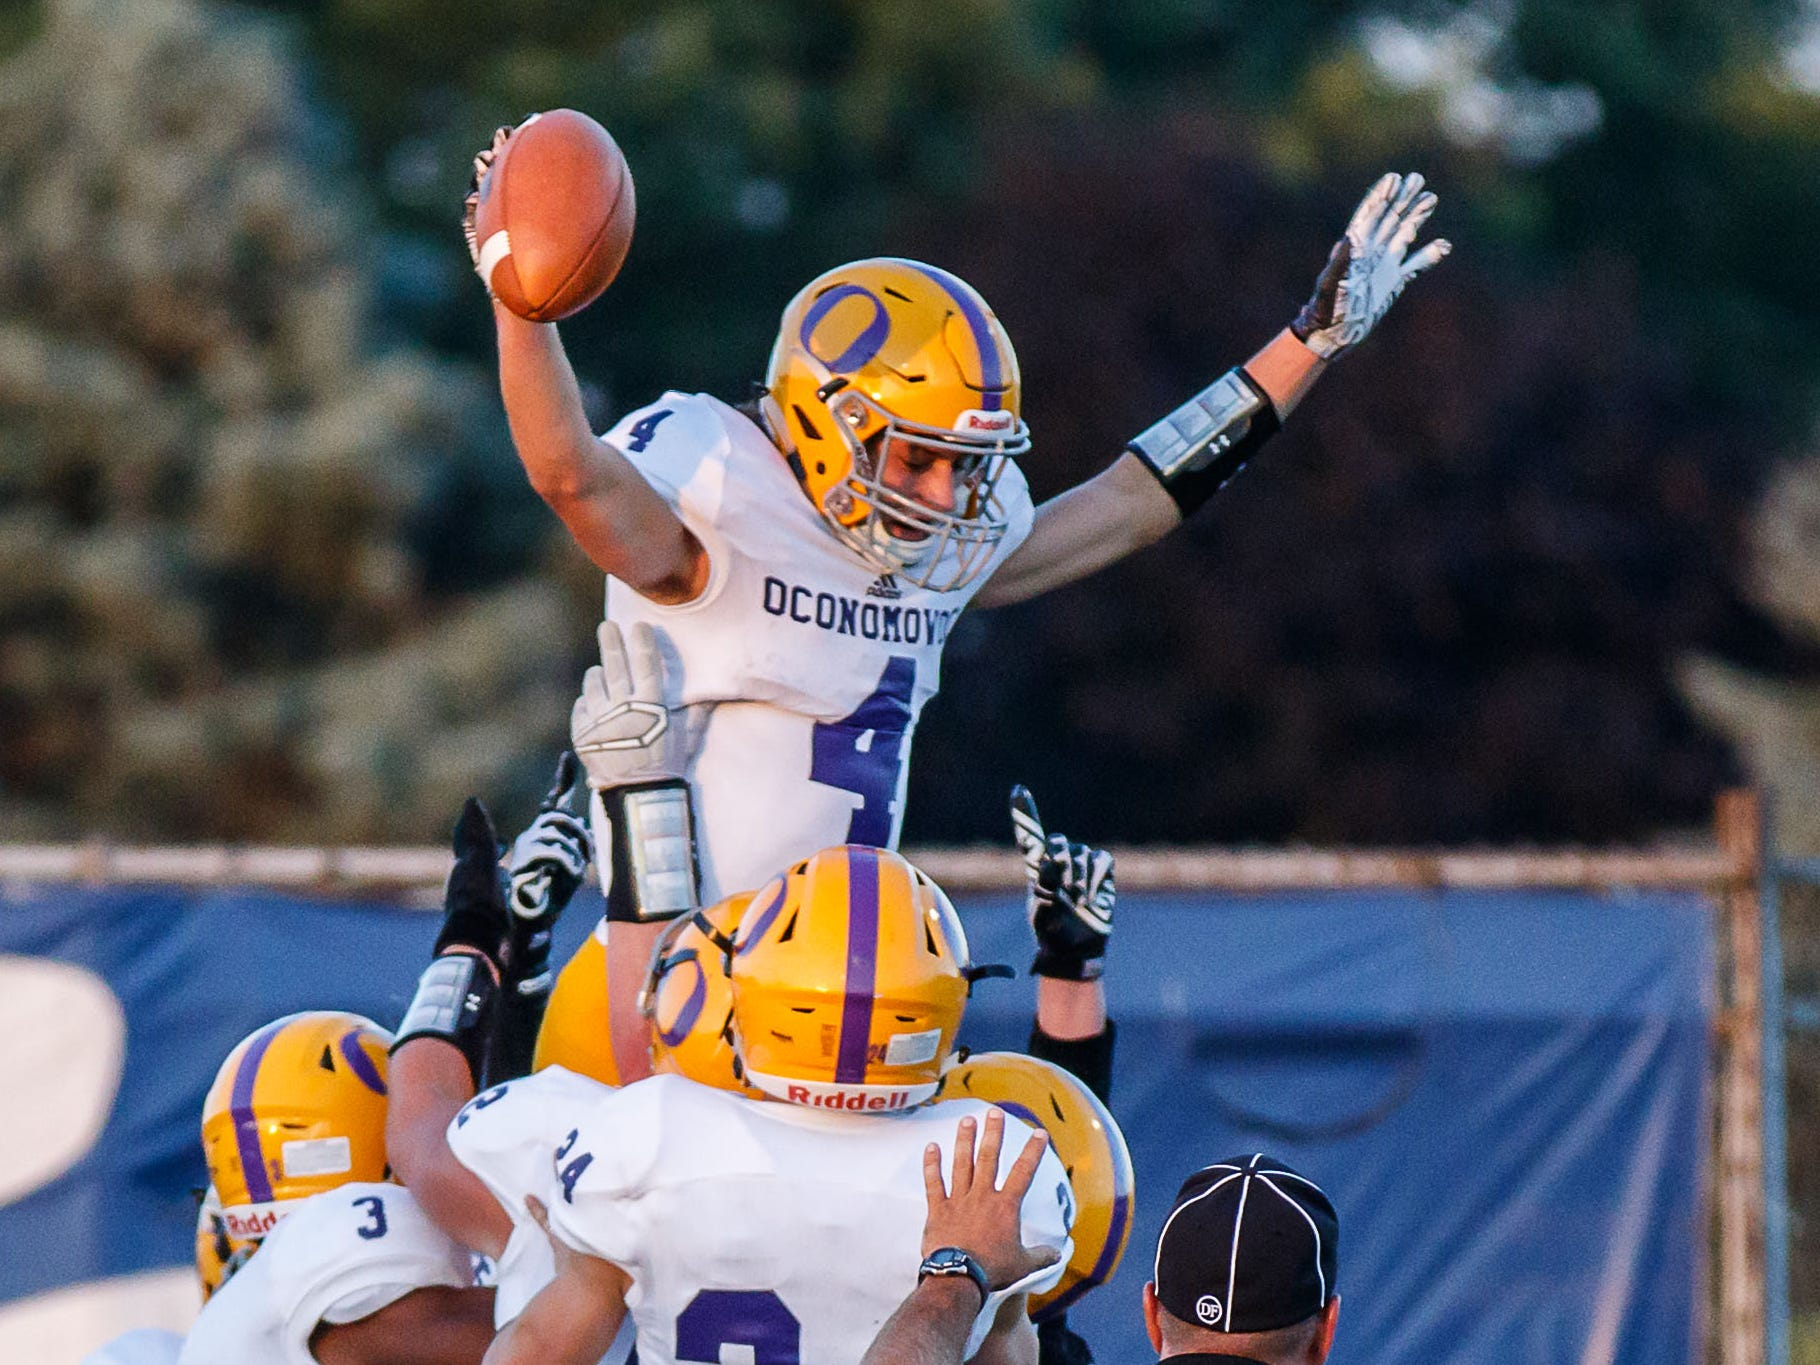 Oconomowoc receiver Ethan Burch (4) is hoisted by teammates after a 36-yard touchdown reception during the game at Brookfield Central on Thursday, August 23, 2018.